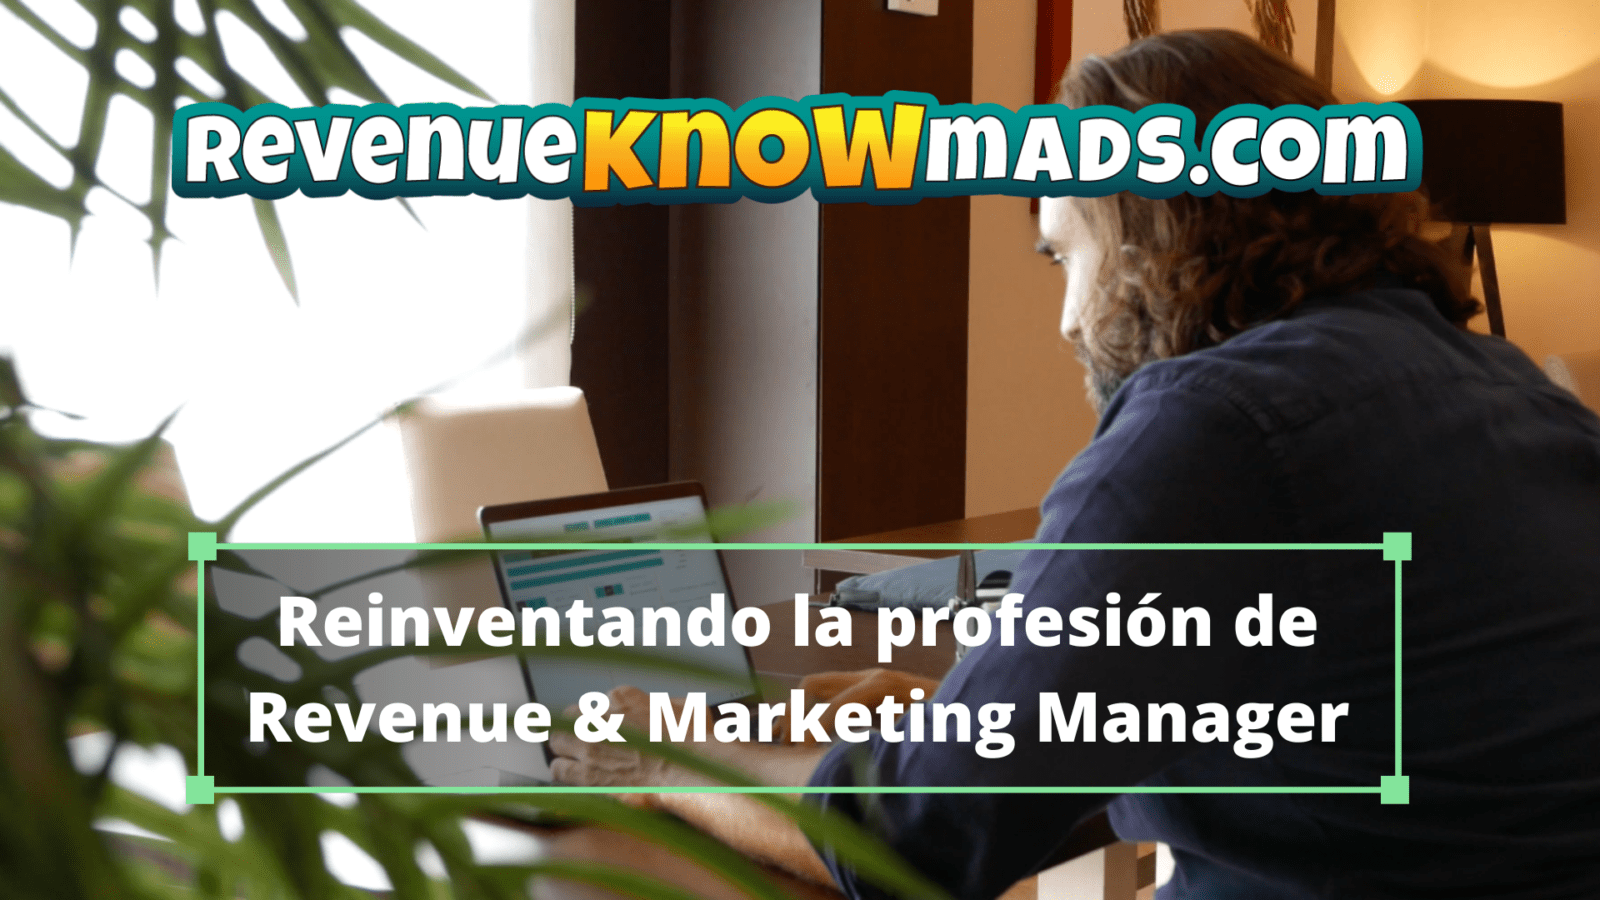 RevenueKnowmads - Reinventando la profesión de Revenue & Marketing Manager